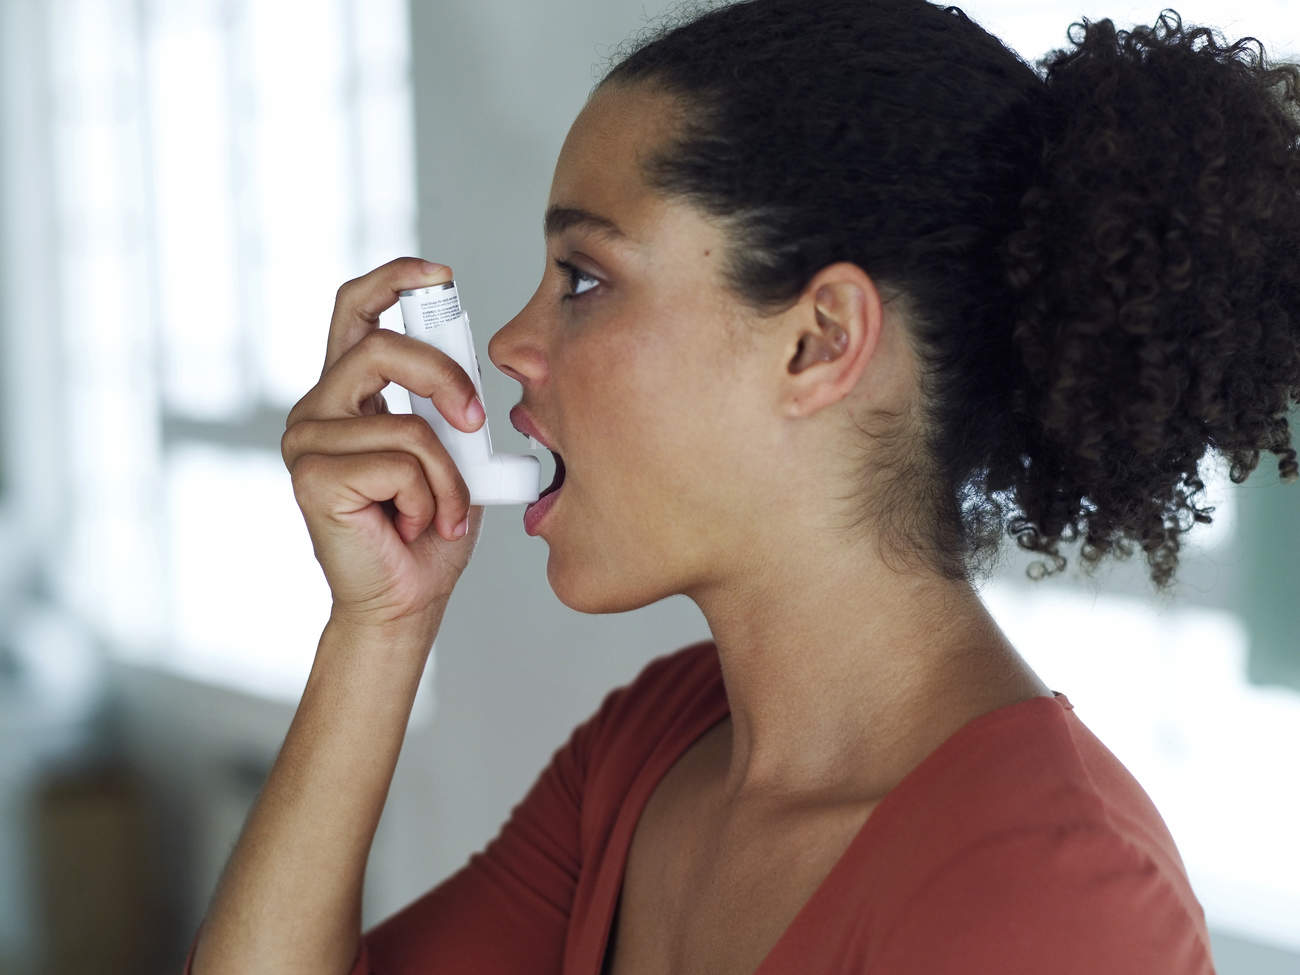 Woman using asthma inhaler